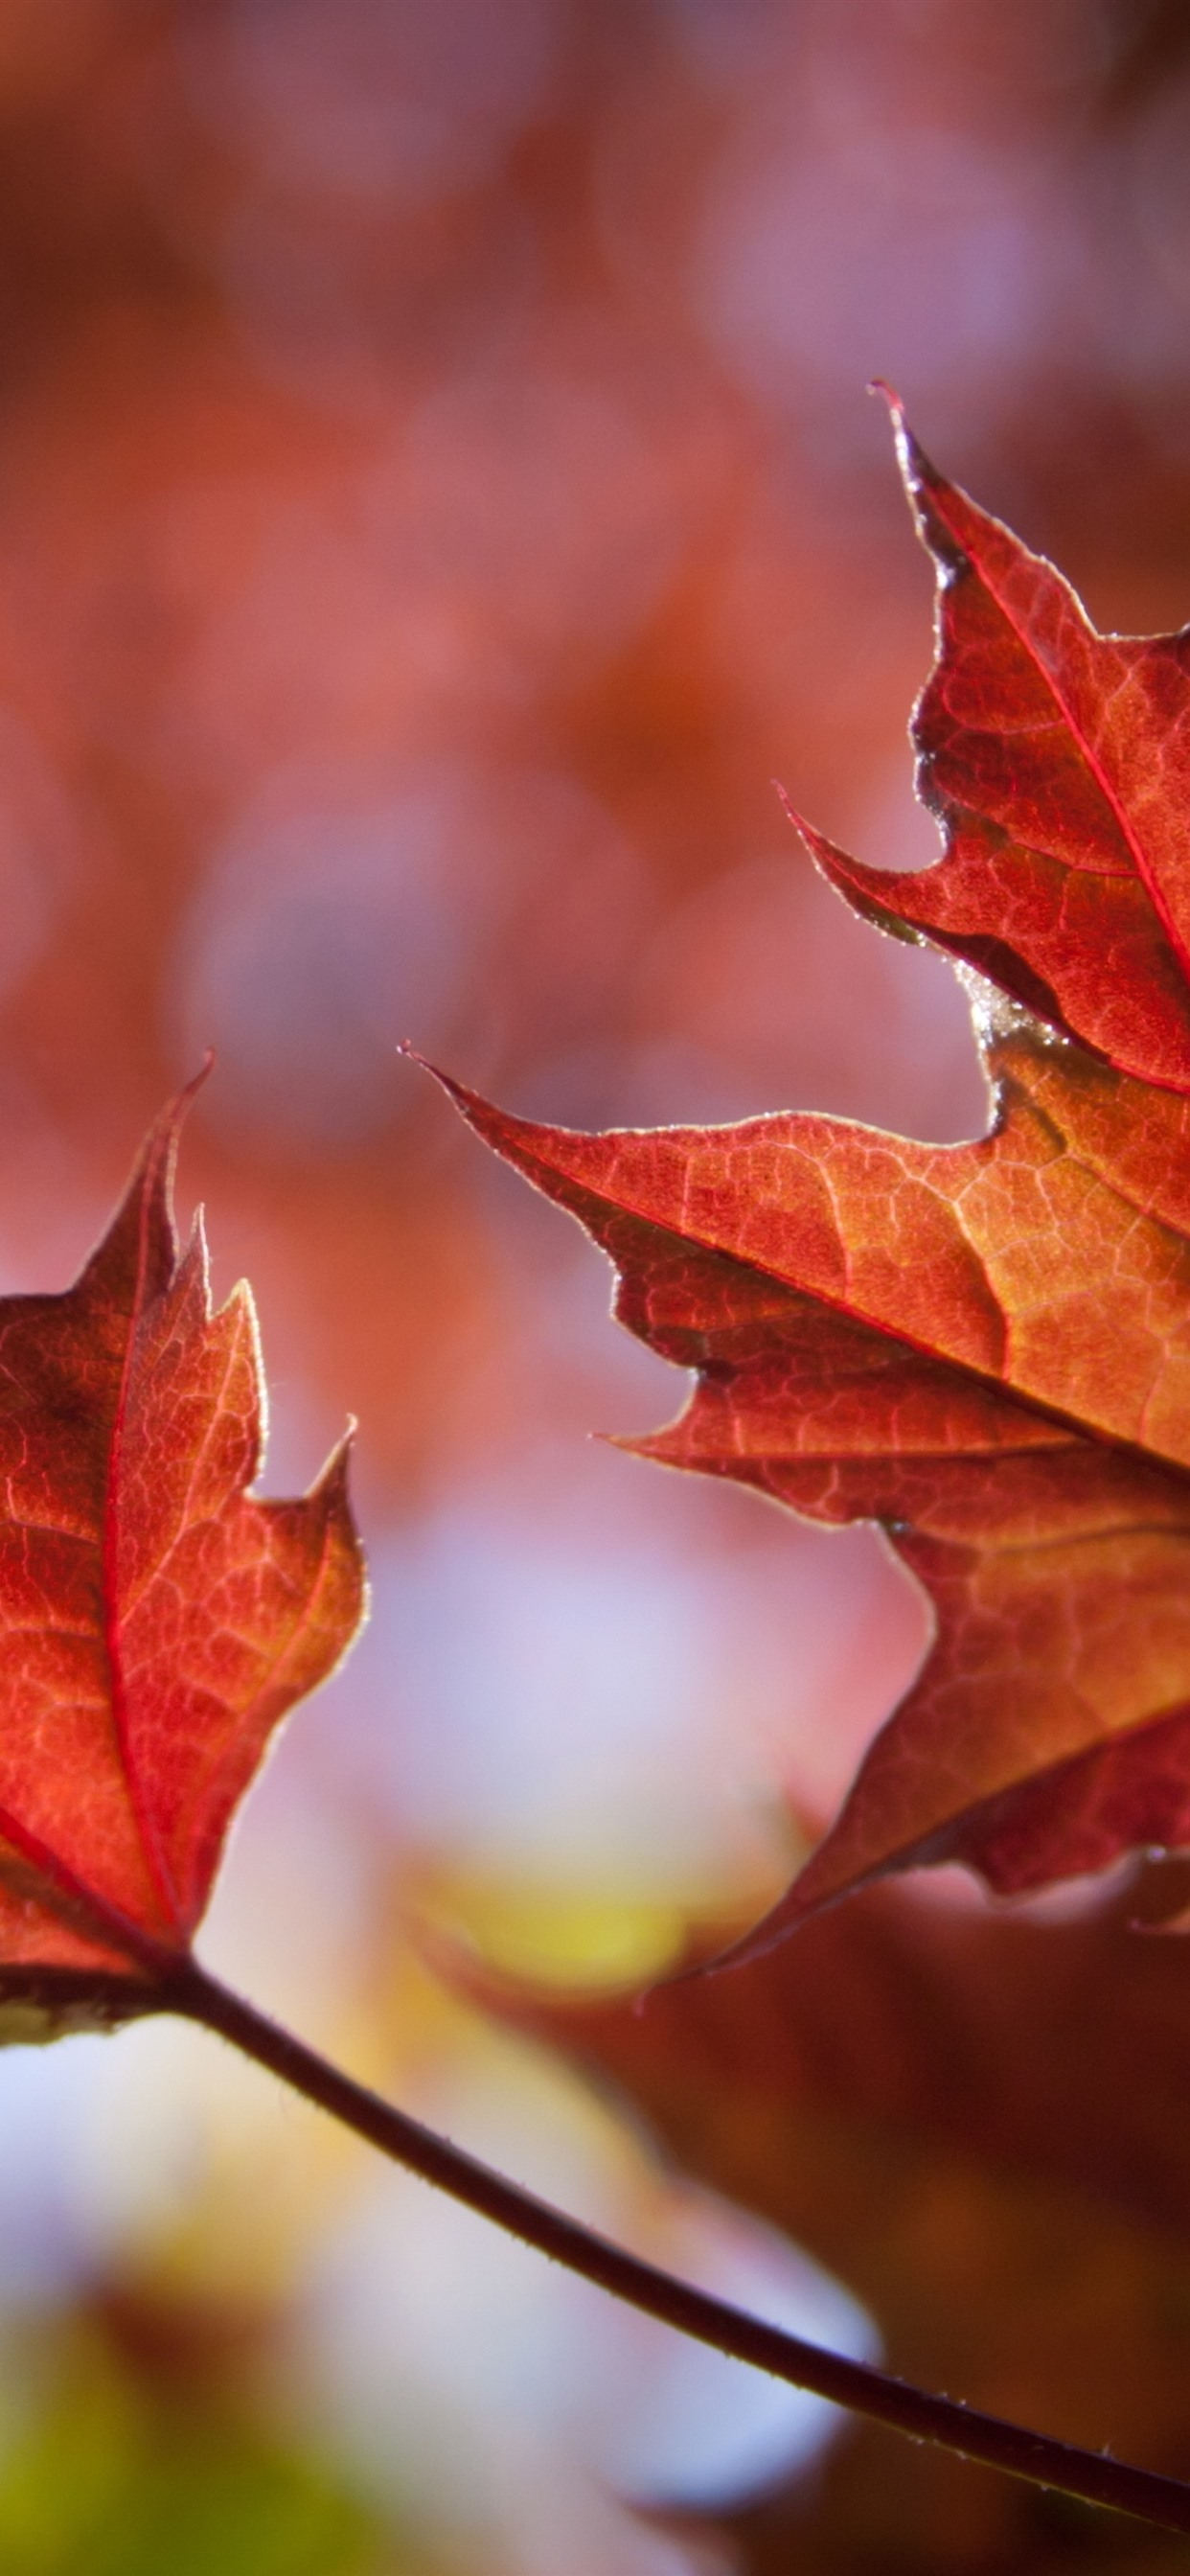 Two Red Maple Leaves Autumn 1242x2688 Iphone 11 Pro Xs Max Wallpaper Background Picture Image